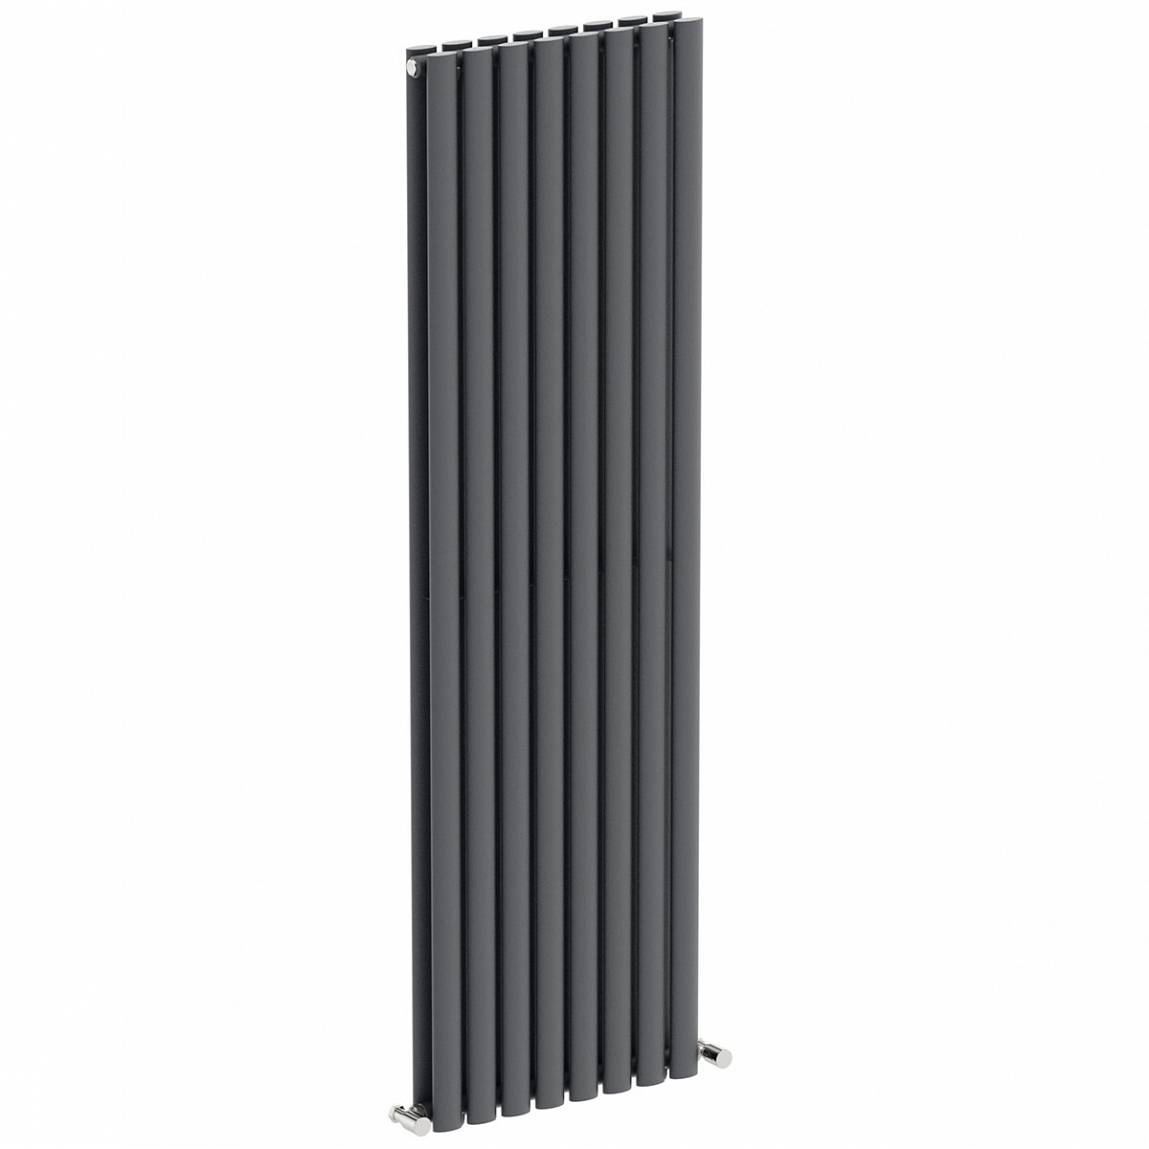 Image of Lava Double Radiator 1600 x 480 Special Offer